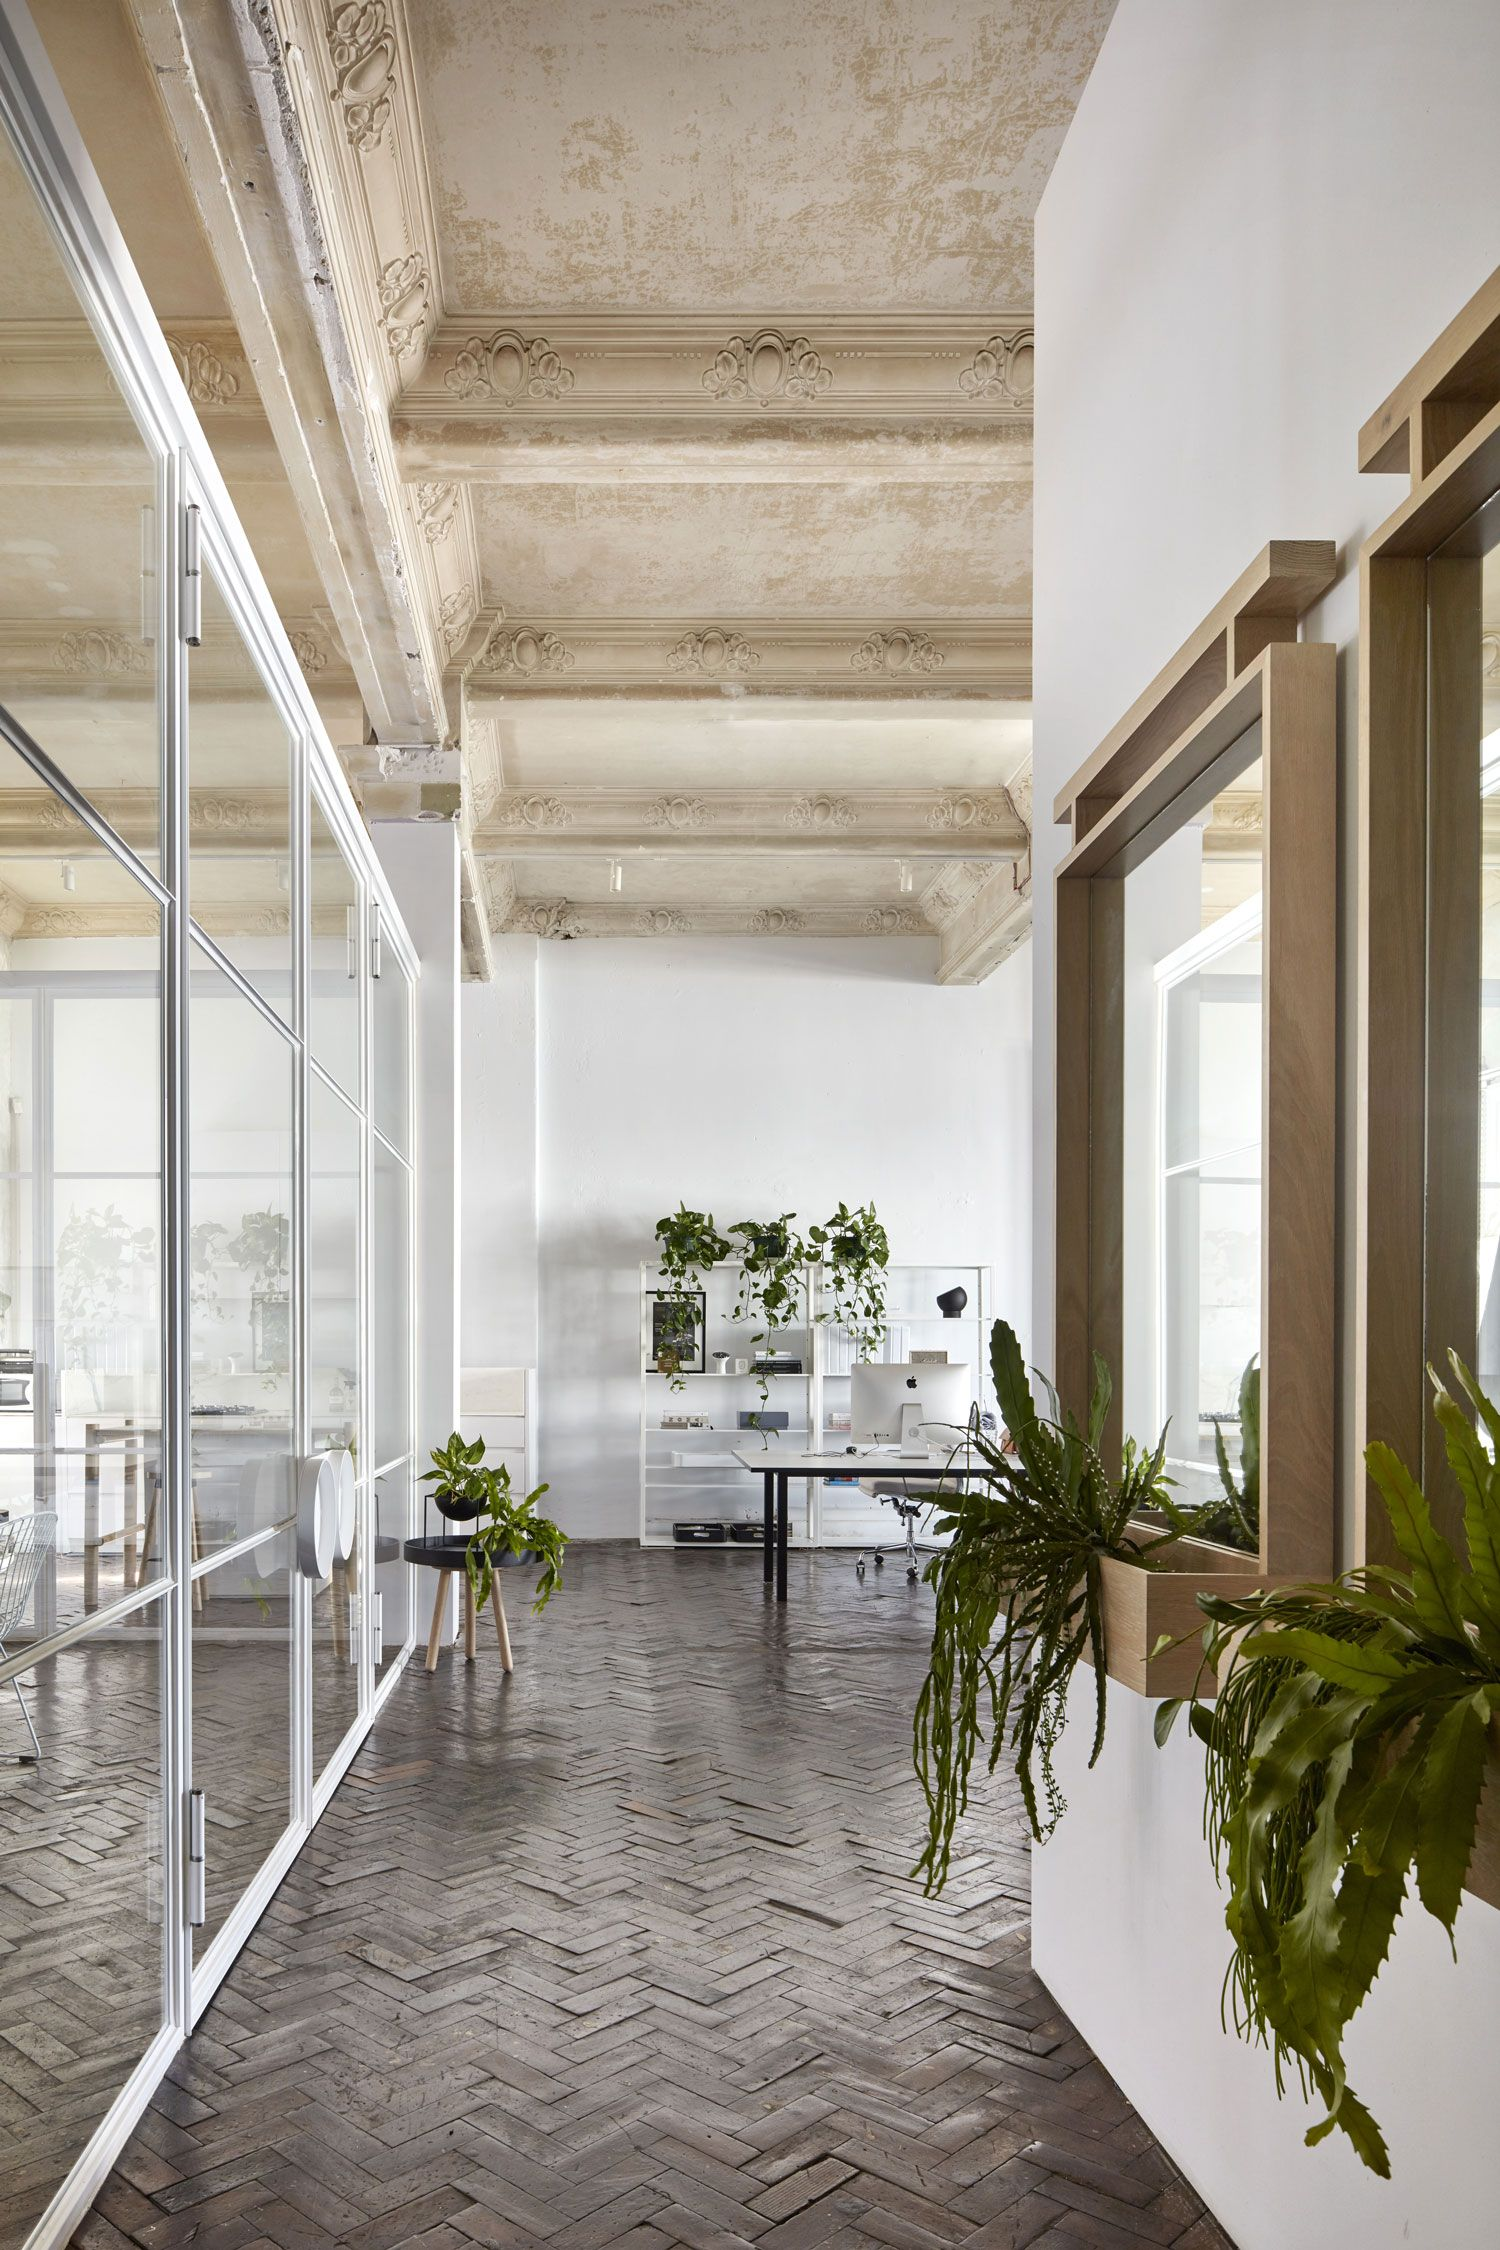 Melbourne Based Interior Design Studio The Stella Collective Has Set Up Their Office